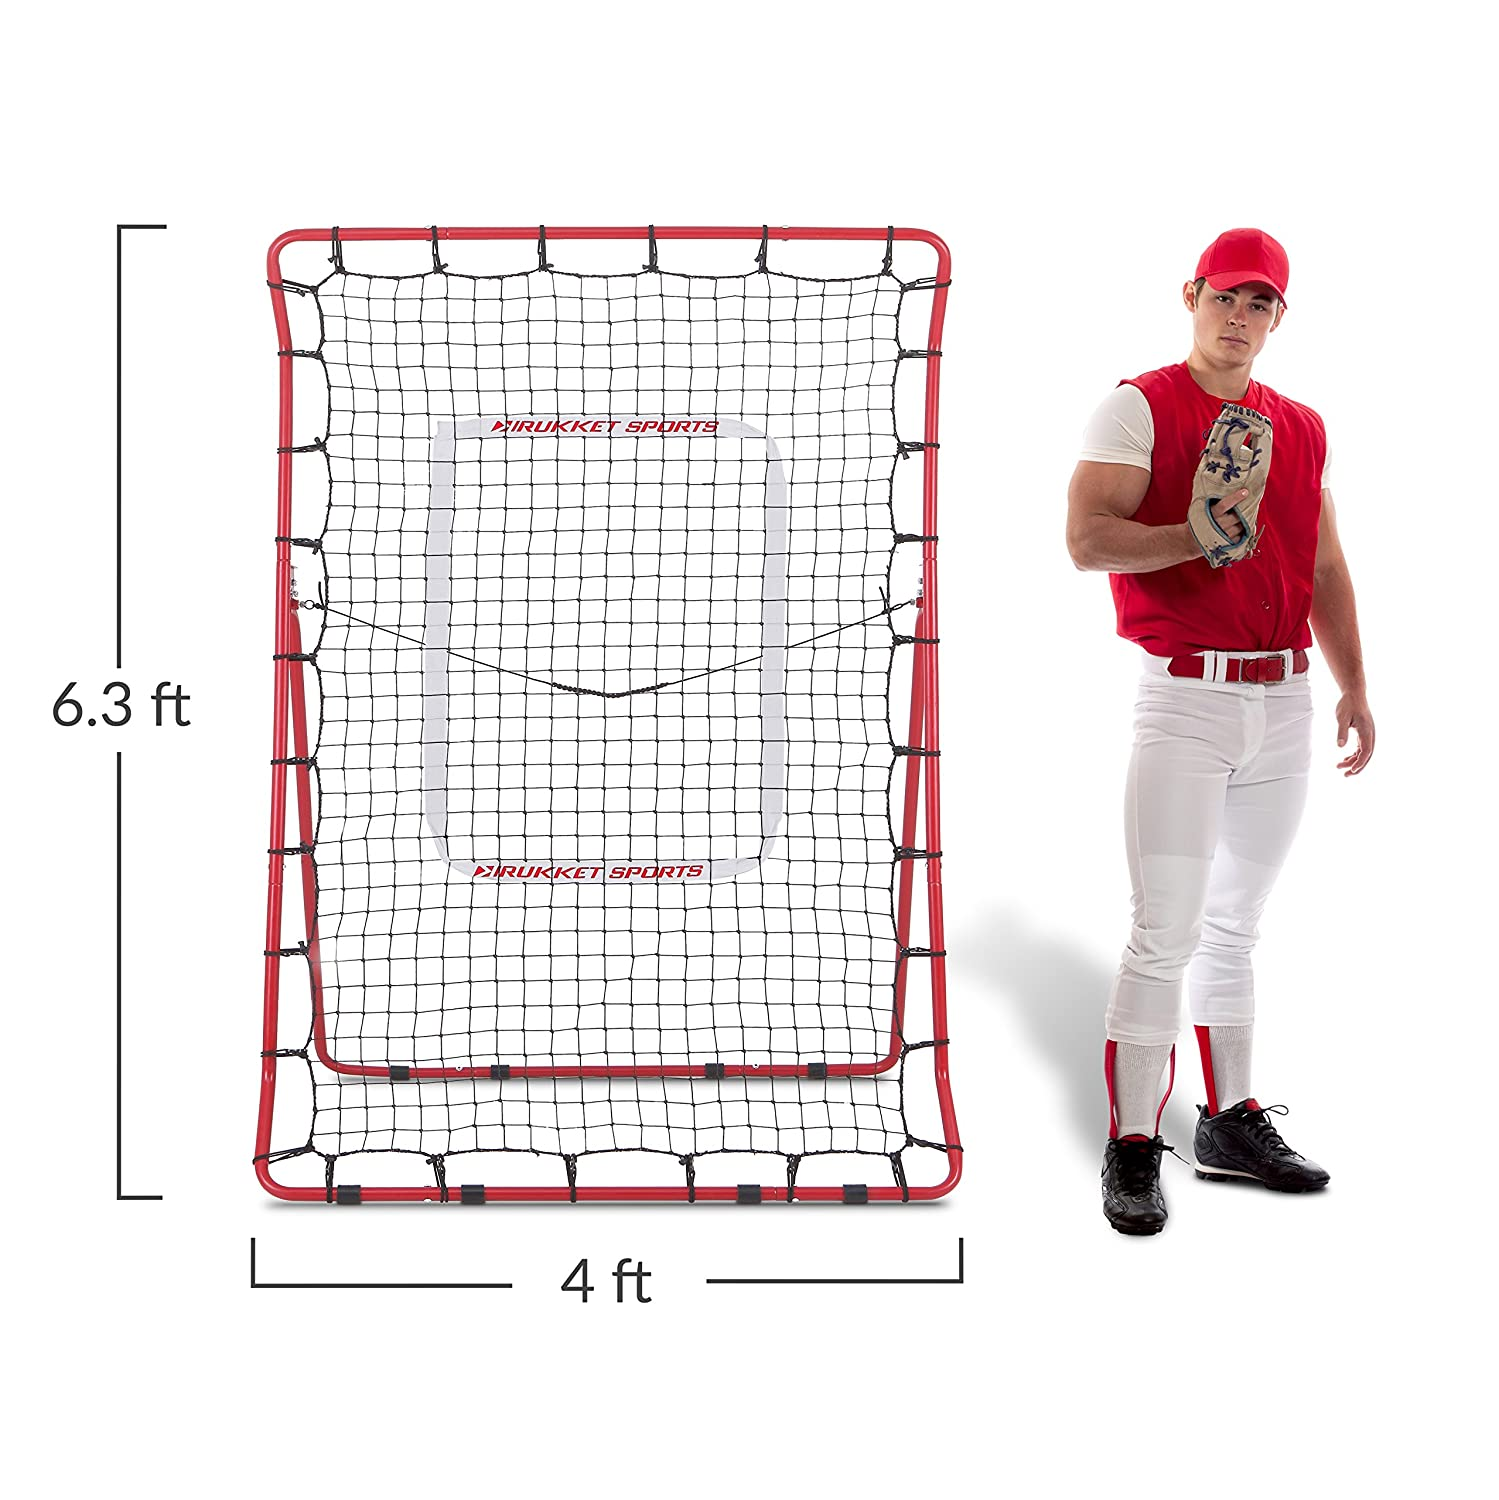 Pitching and Throwing Practice Partner Rukket Pitch Back Baseball//Softball Rebounder PRO Adjustable Angle Pitchback Trainer